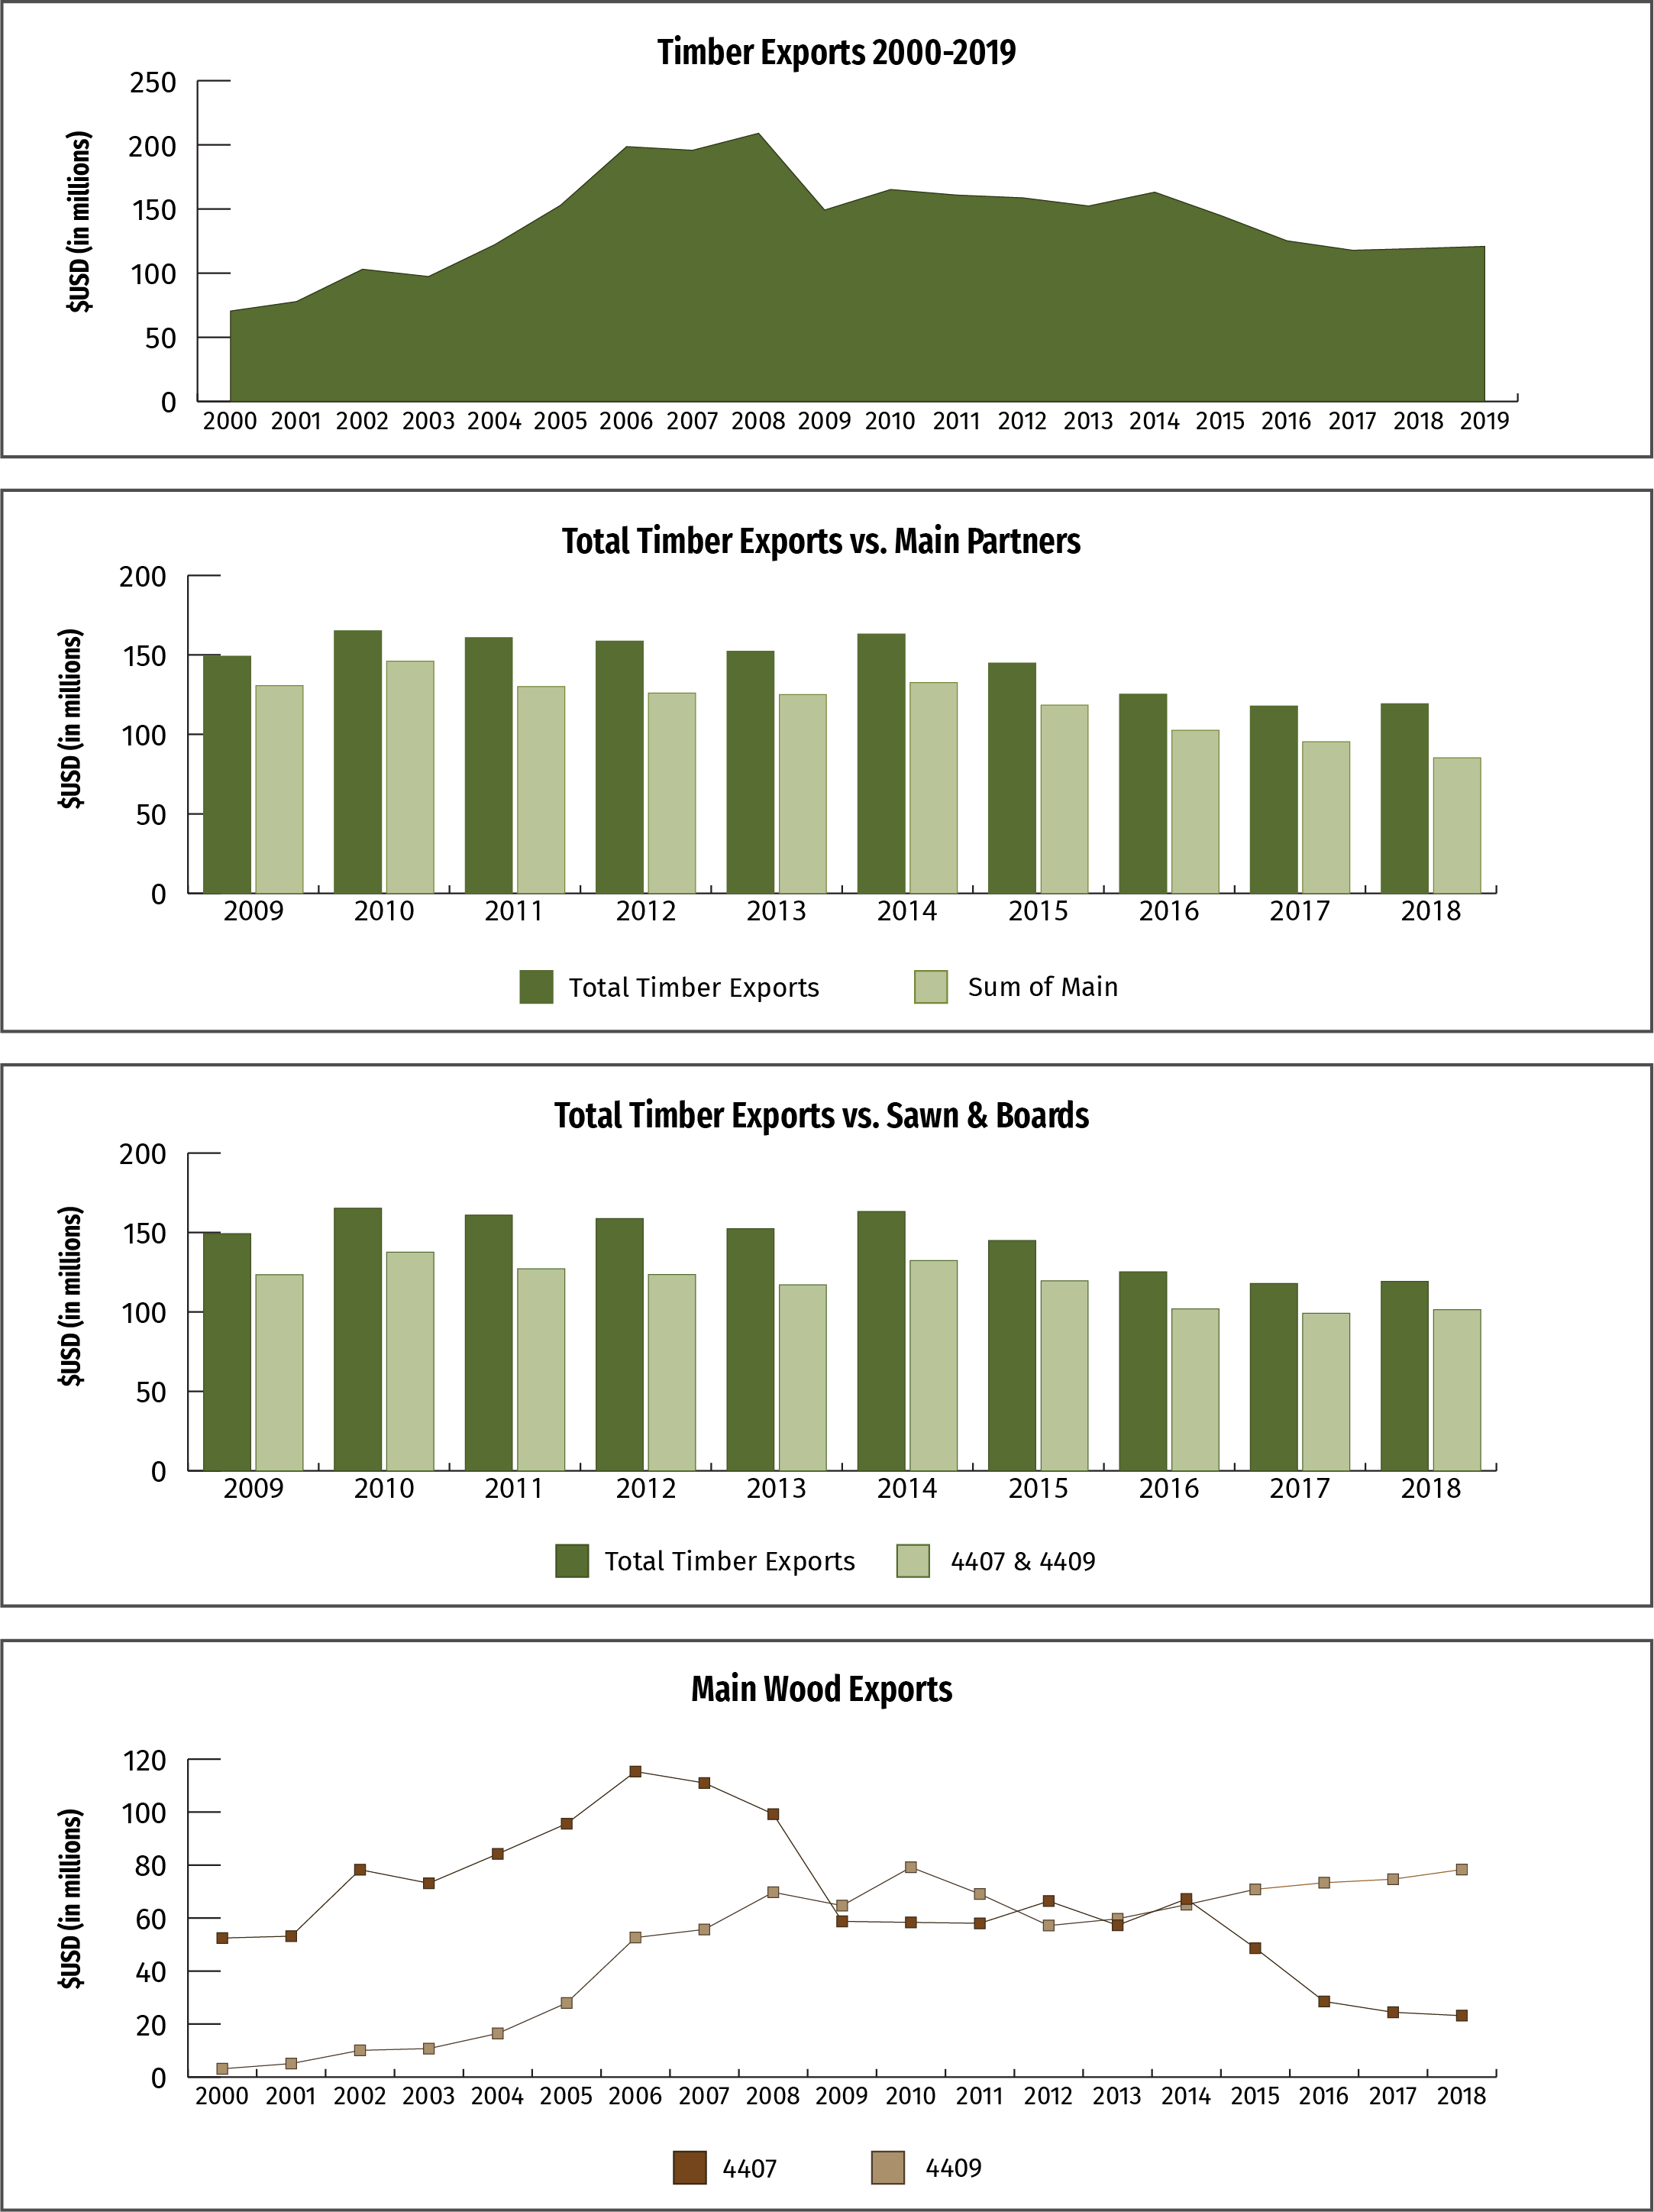 Figure 1: Timber Exports 2000-2019; Figure 2: Total Timber Exports vs. Main Partners; Figure 3: Total Timber Exports vs. Sawn & Boards; Figure 4: Main Wood Exports